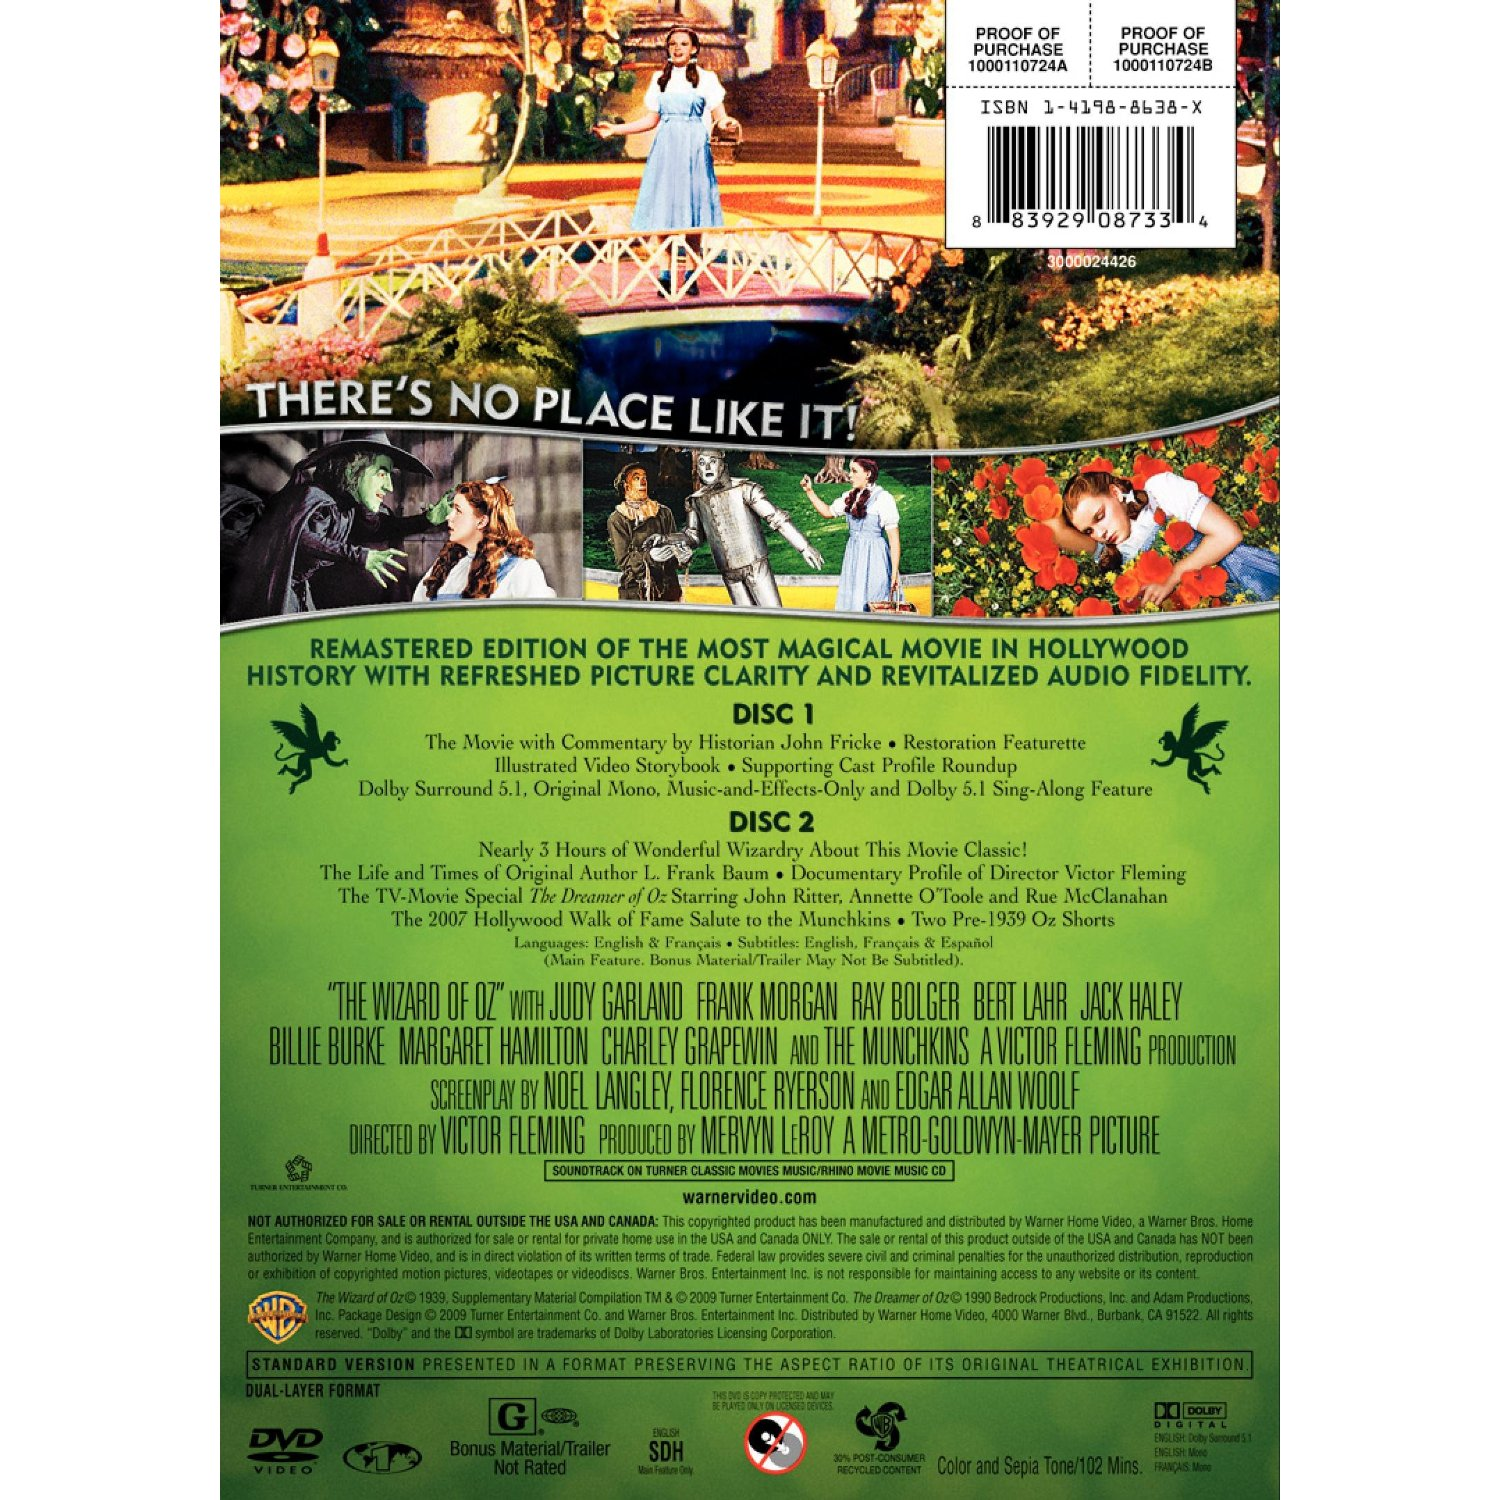 http://1.bp.blogspot.com/-LnnVFNWZz-A/Tpcr5HlQgXI/AAAAAAAAVUE/m9axsvGmhVs/s1600/The+Wizard+of+Oz+Two-Disc+DVD+70th+Anniversary2.jpg